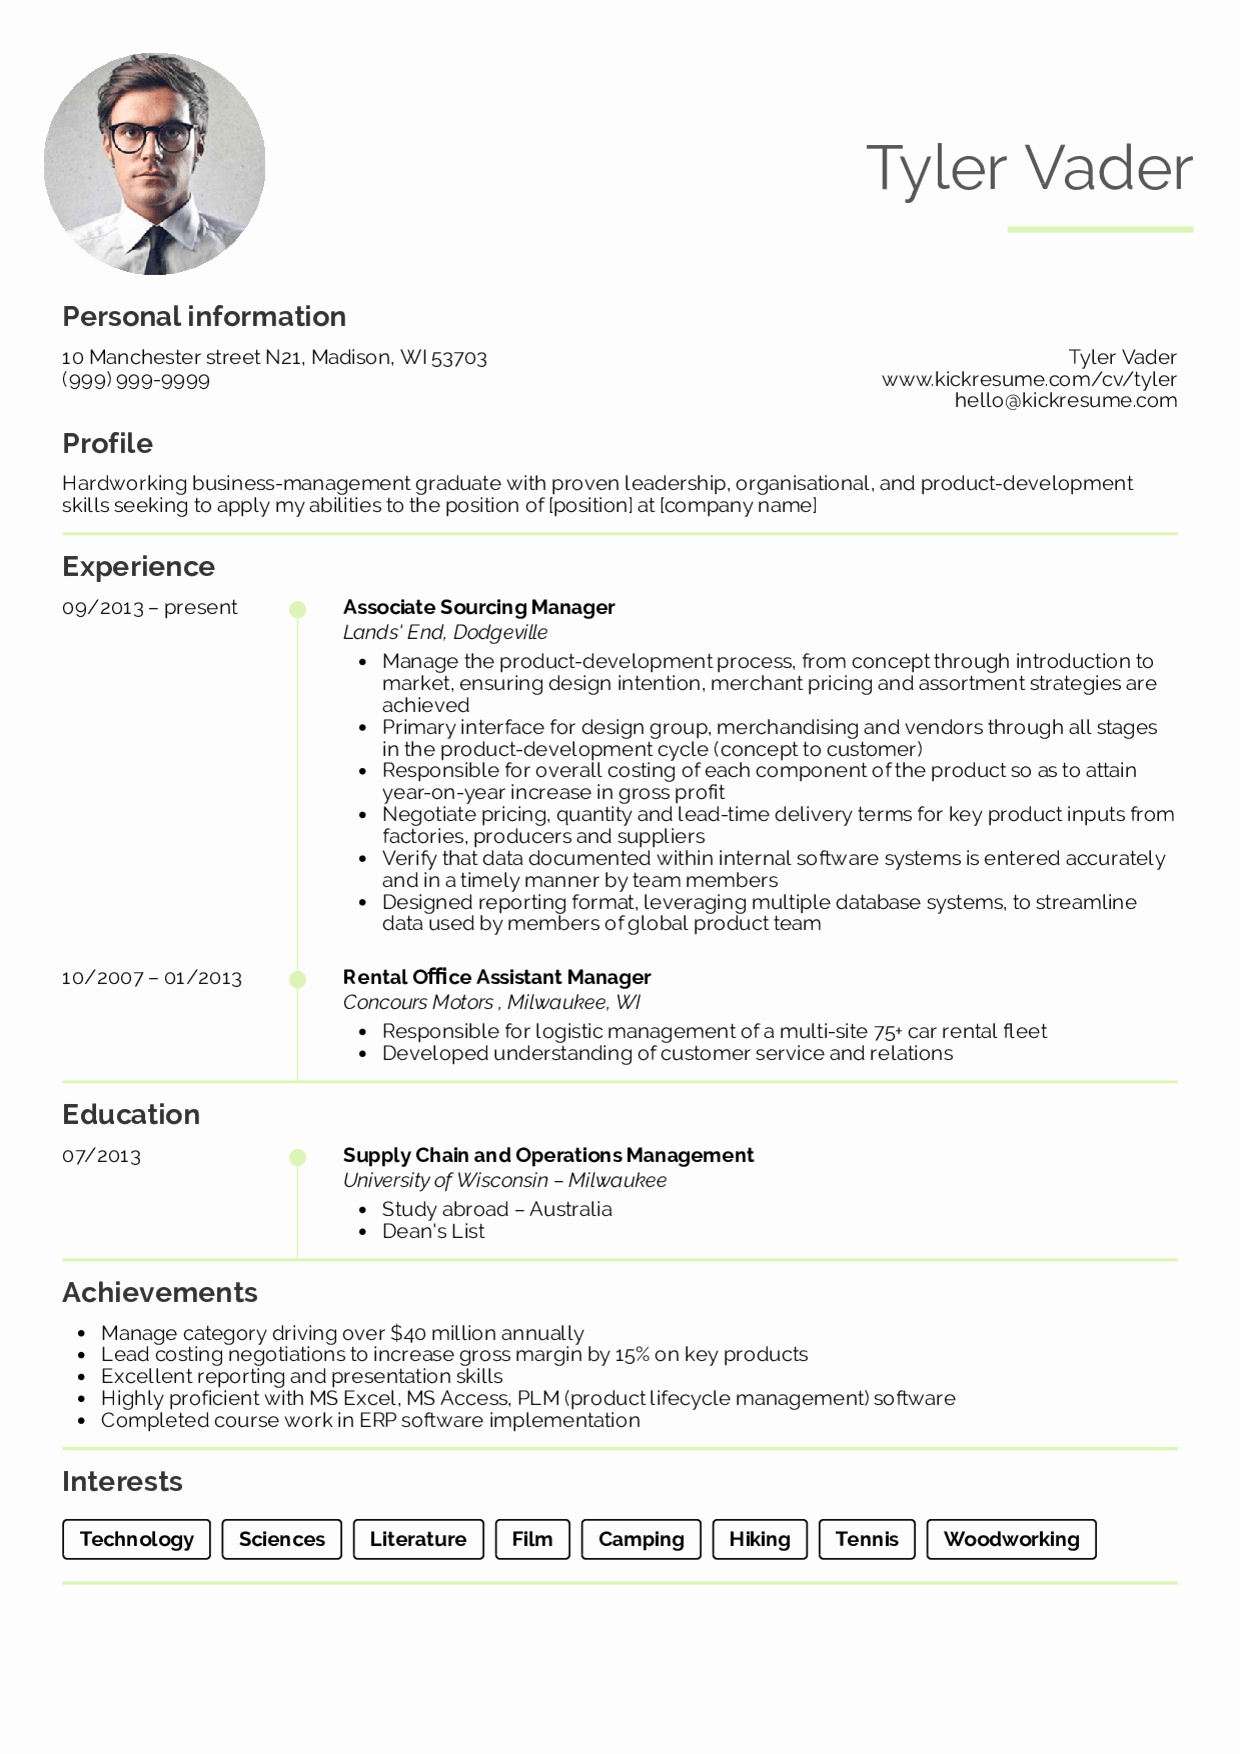 Cv Examples for Students Inspirational Resume Examples by Real People Business Management